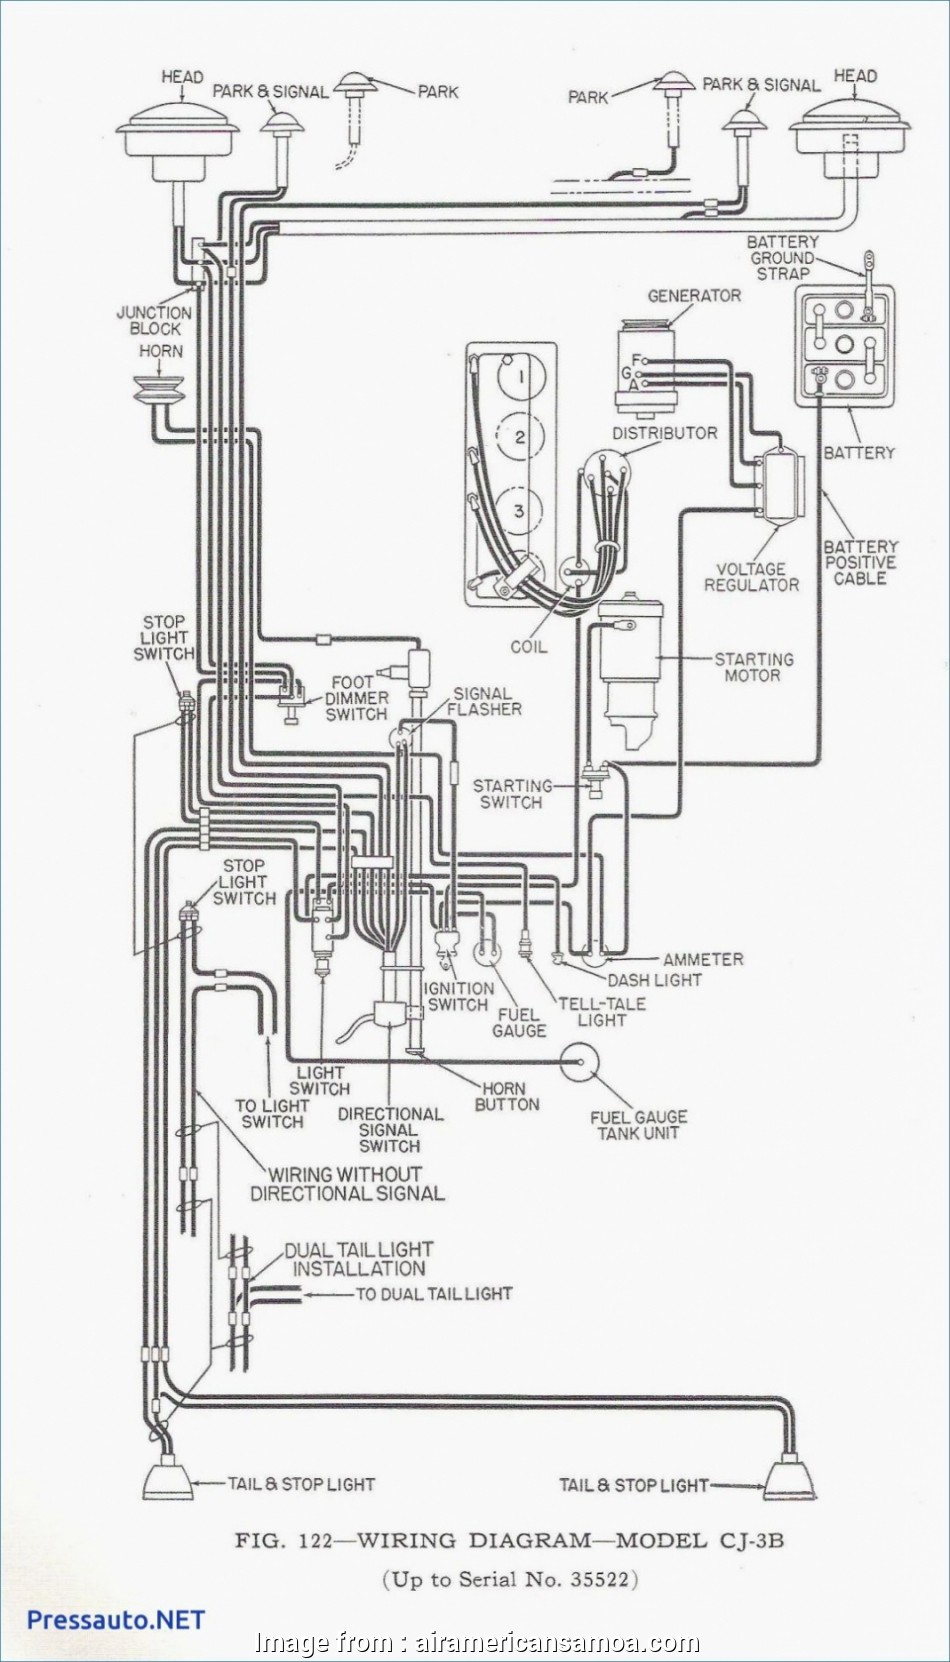 [DIAGRAM] 3 Pole Transfer Switch Wiring Diagram Collection